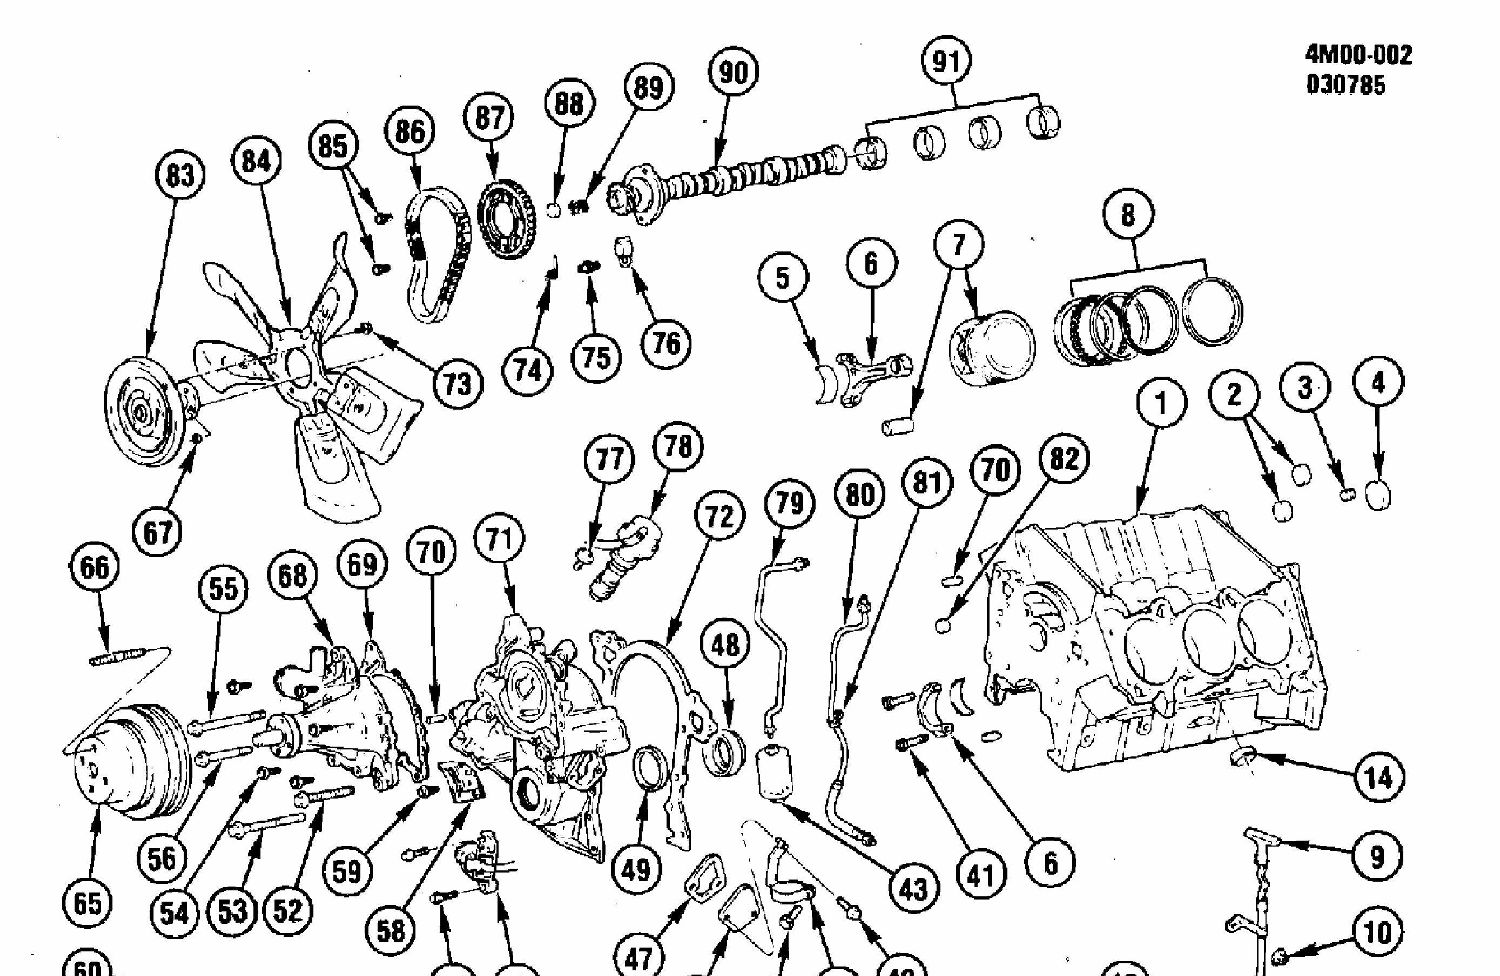 Gm 3400 V6 Engine Diagram on 2000 Buick Lesabre 3800 Engine Diagram